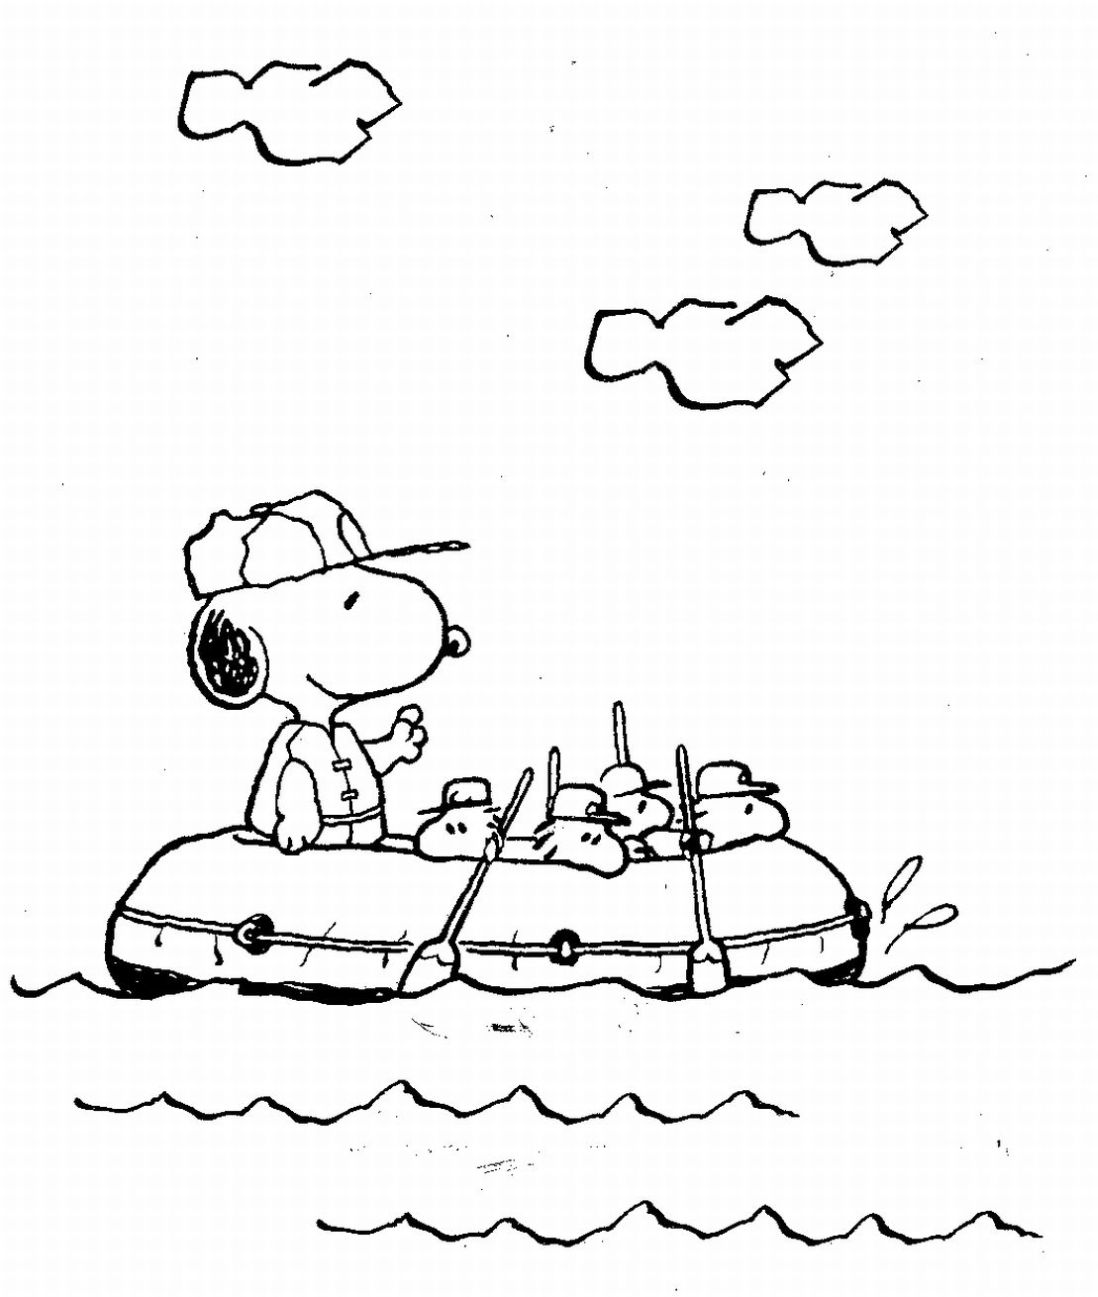 Snoopy And Friends Coloring Pages. 6 treasured snoopy christmas ...